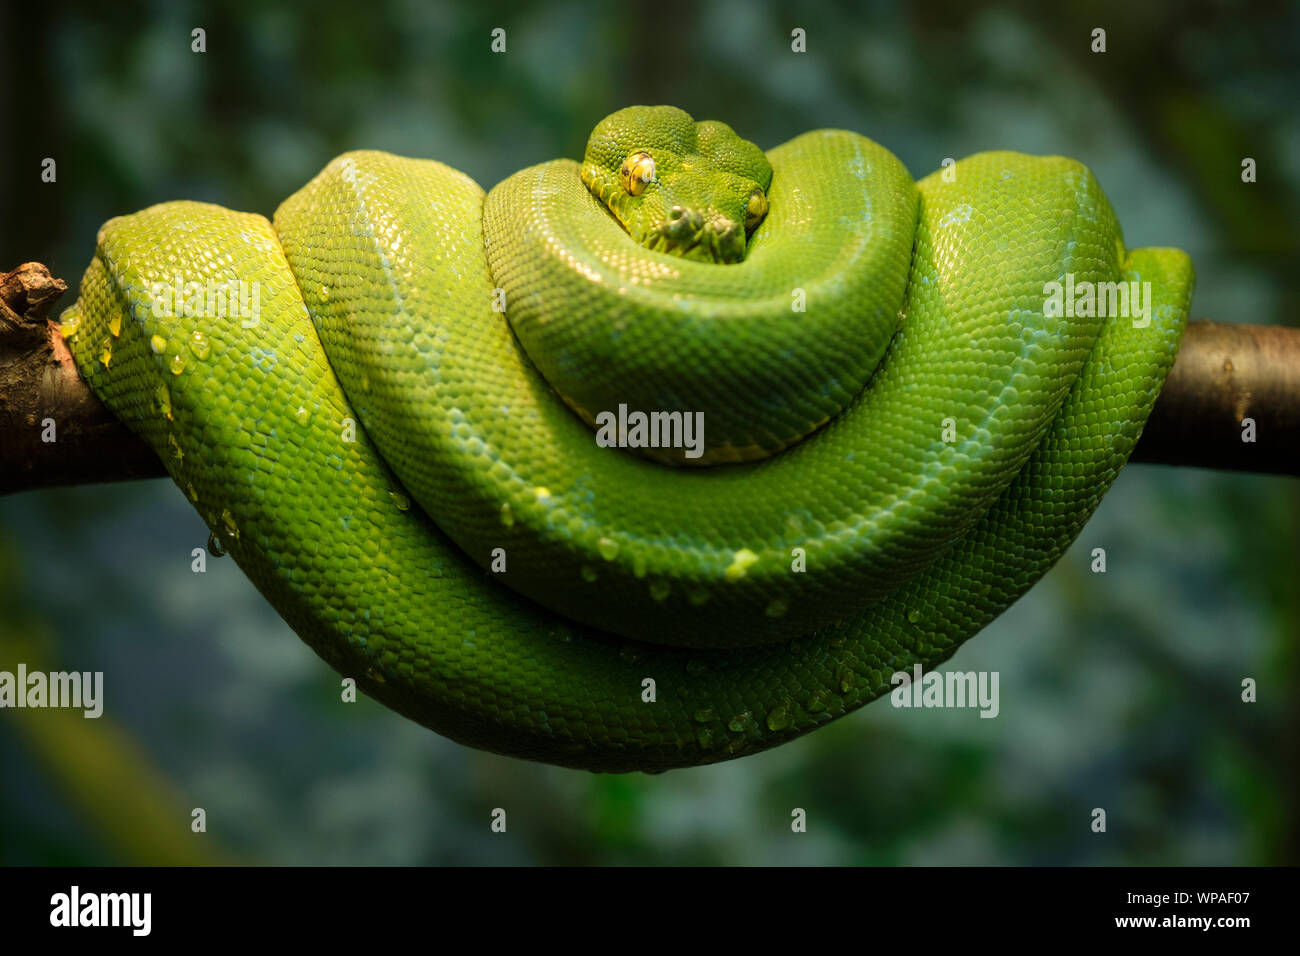 Green snake curled up on a branch. Stock Photo